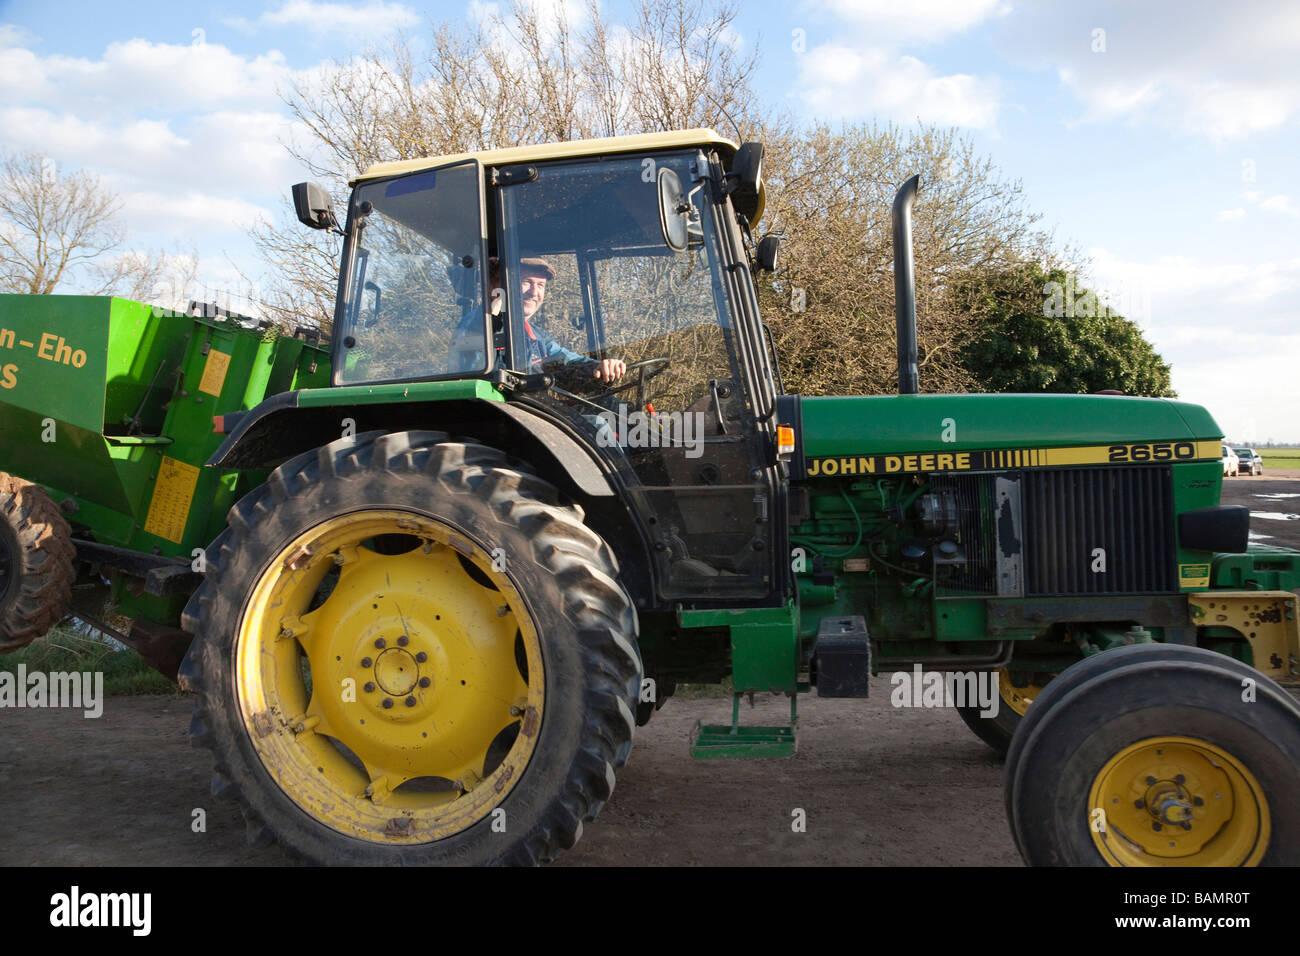 john deere 2650 traktor auf einem bauernhof stockfoto bild 23814024 alamy. Black Bedroom Furniture Sets. Home Design Ideas